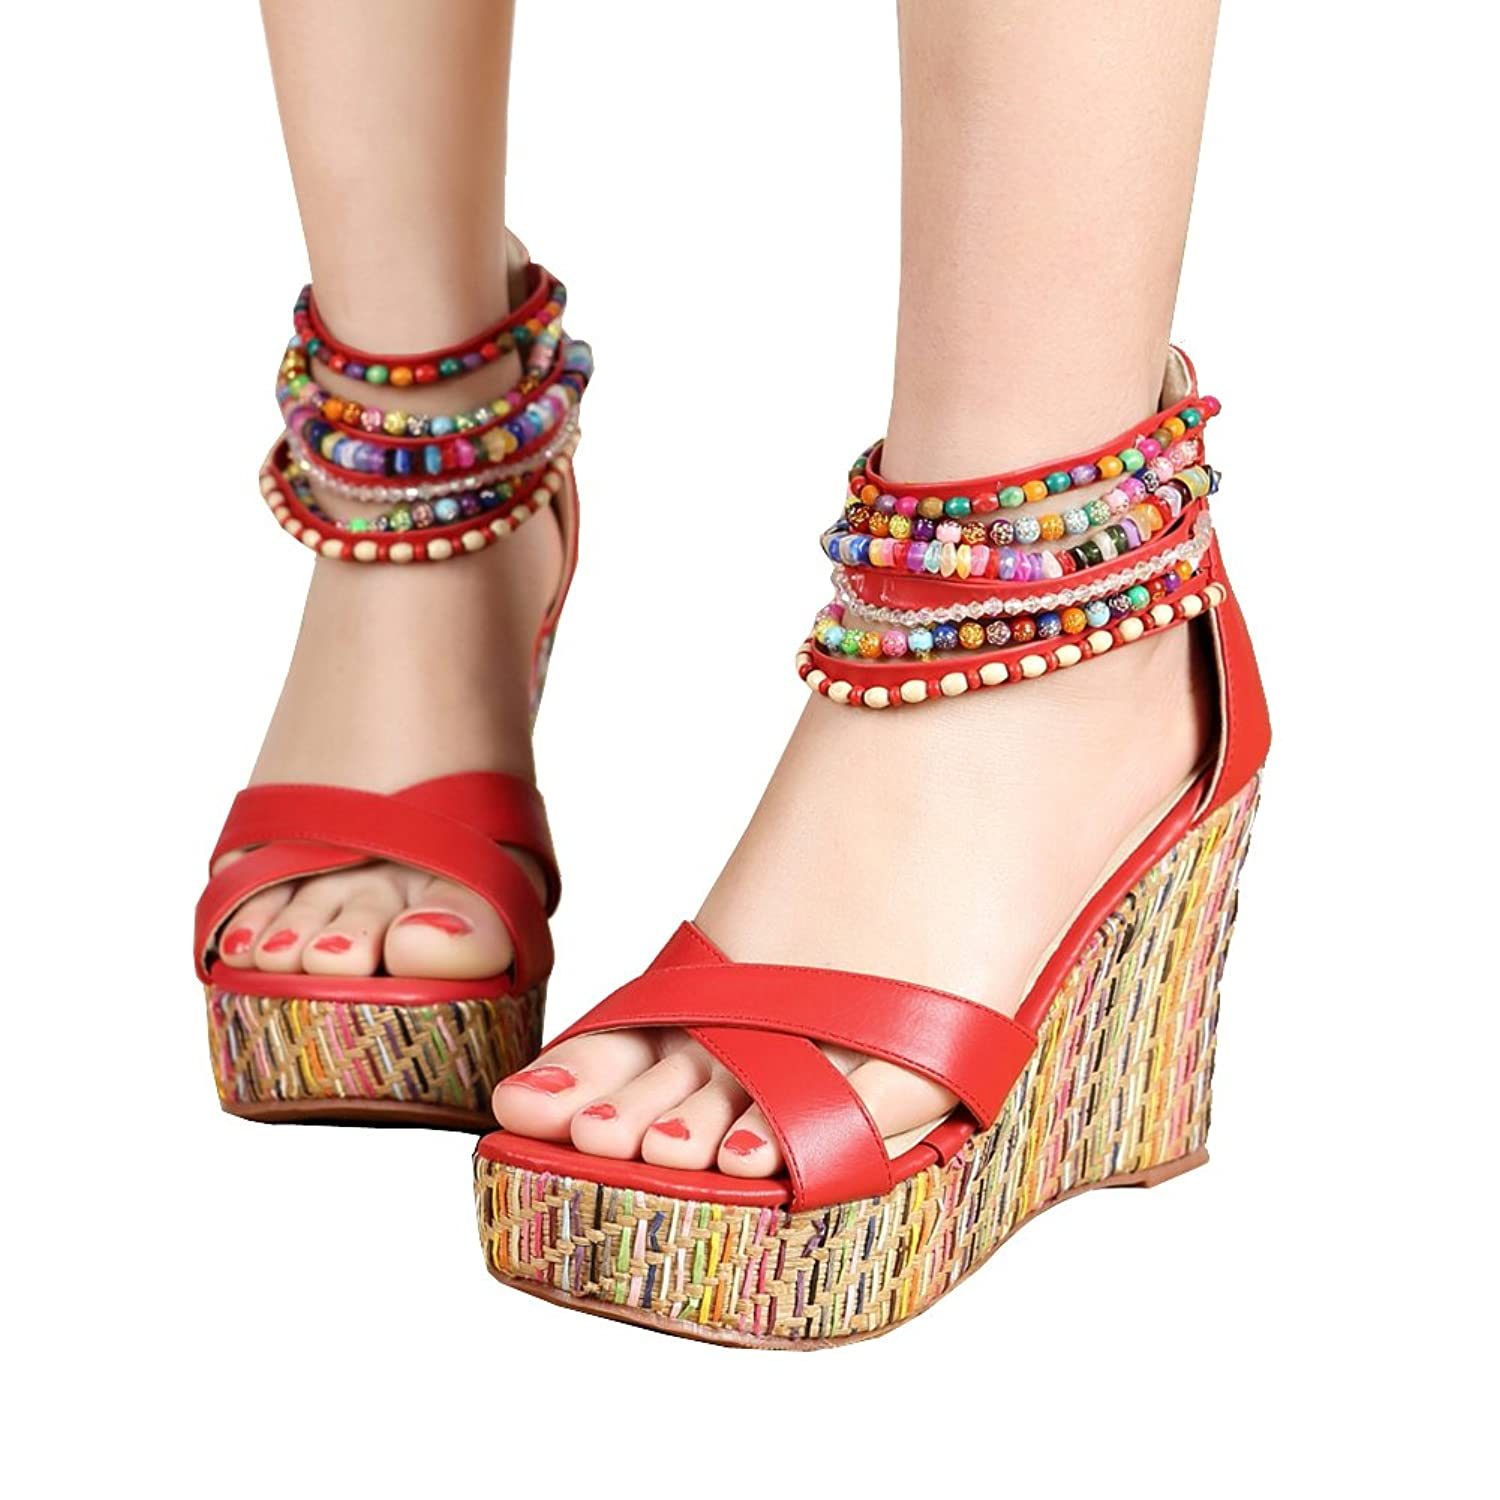 Women's Beaded Platform Wedge High Heel Sandal - DeluxeAdultCostumes.com